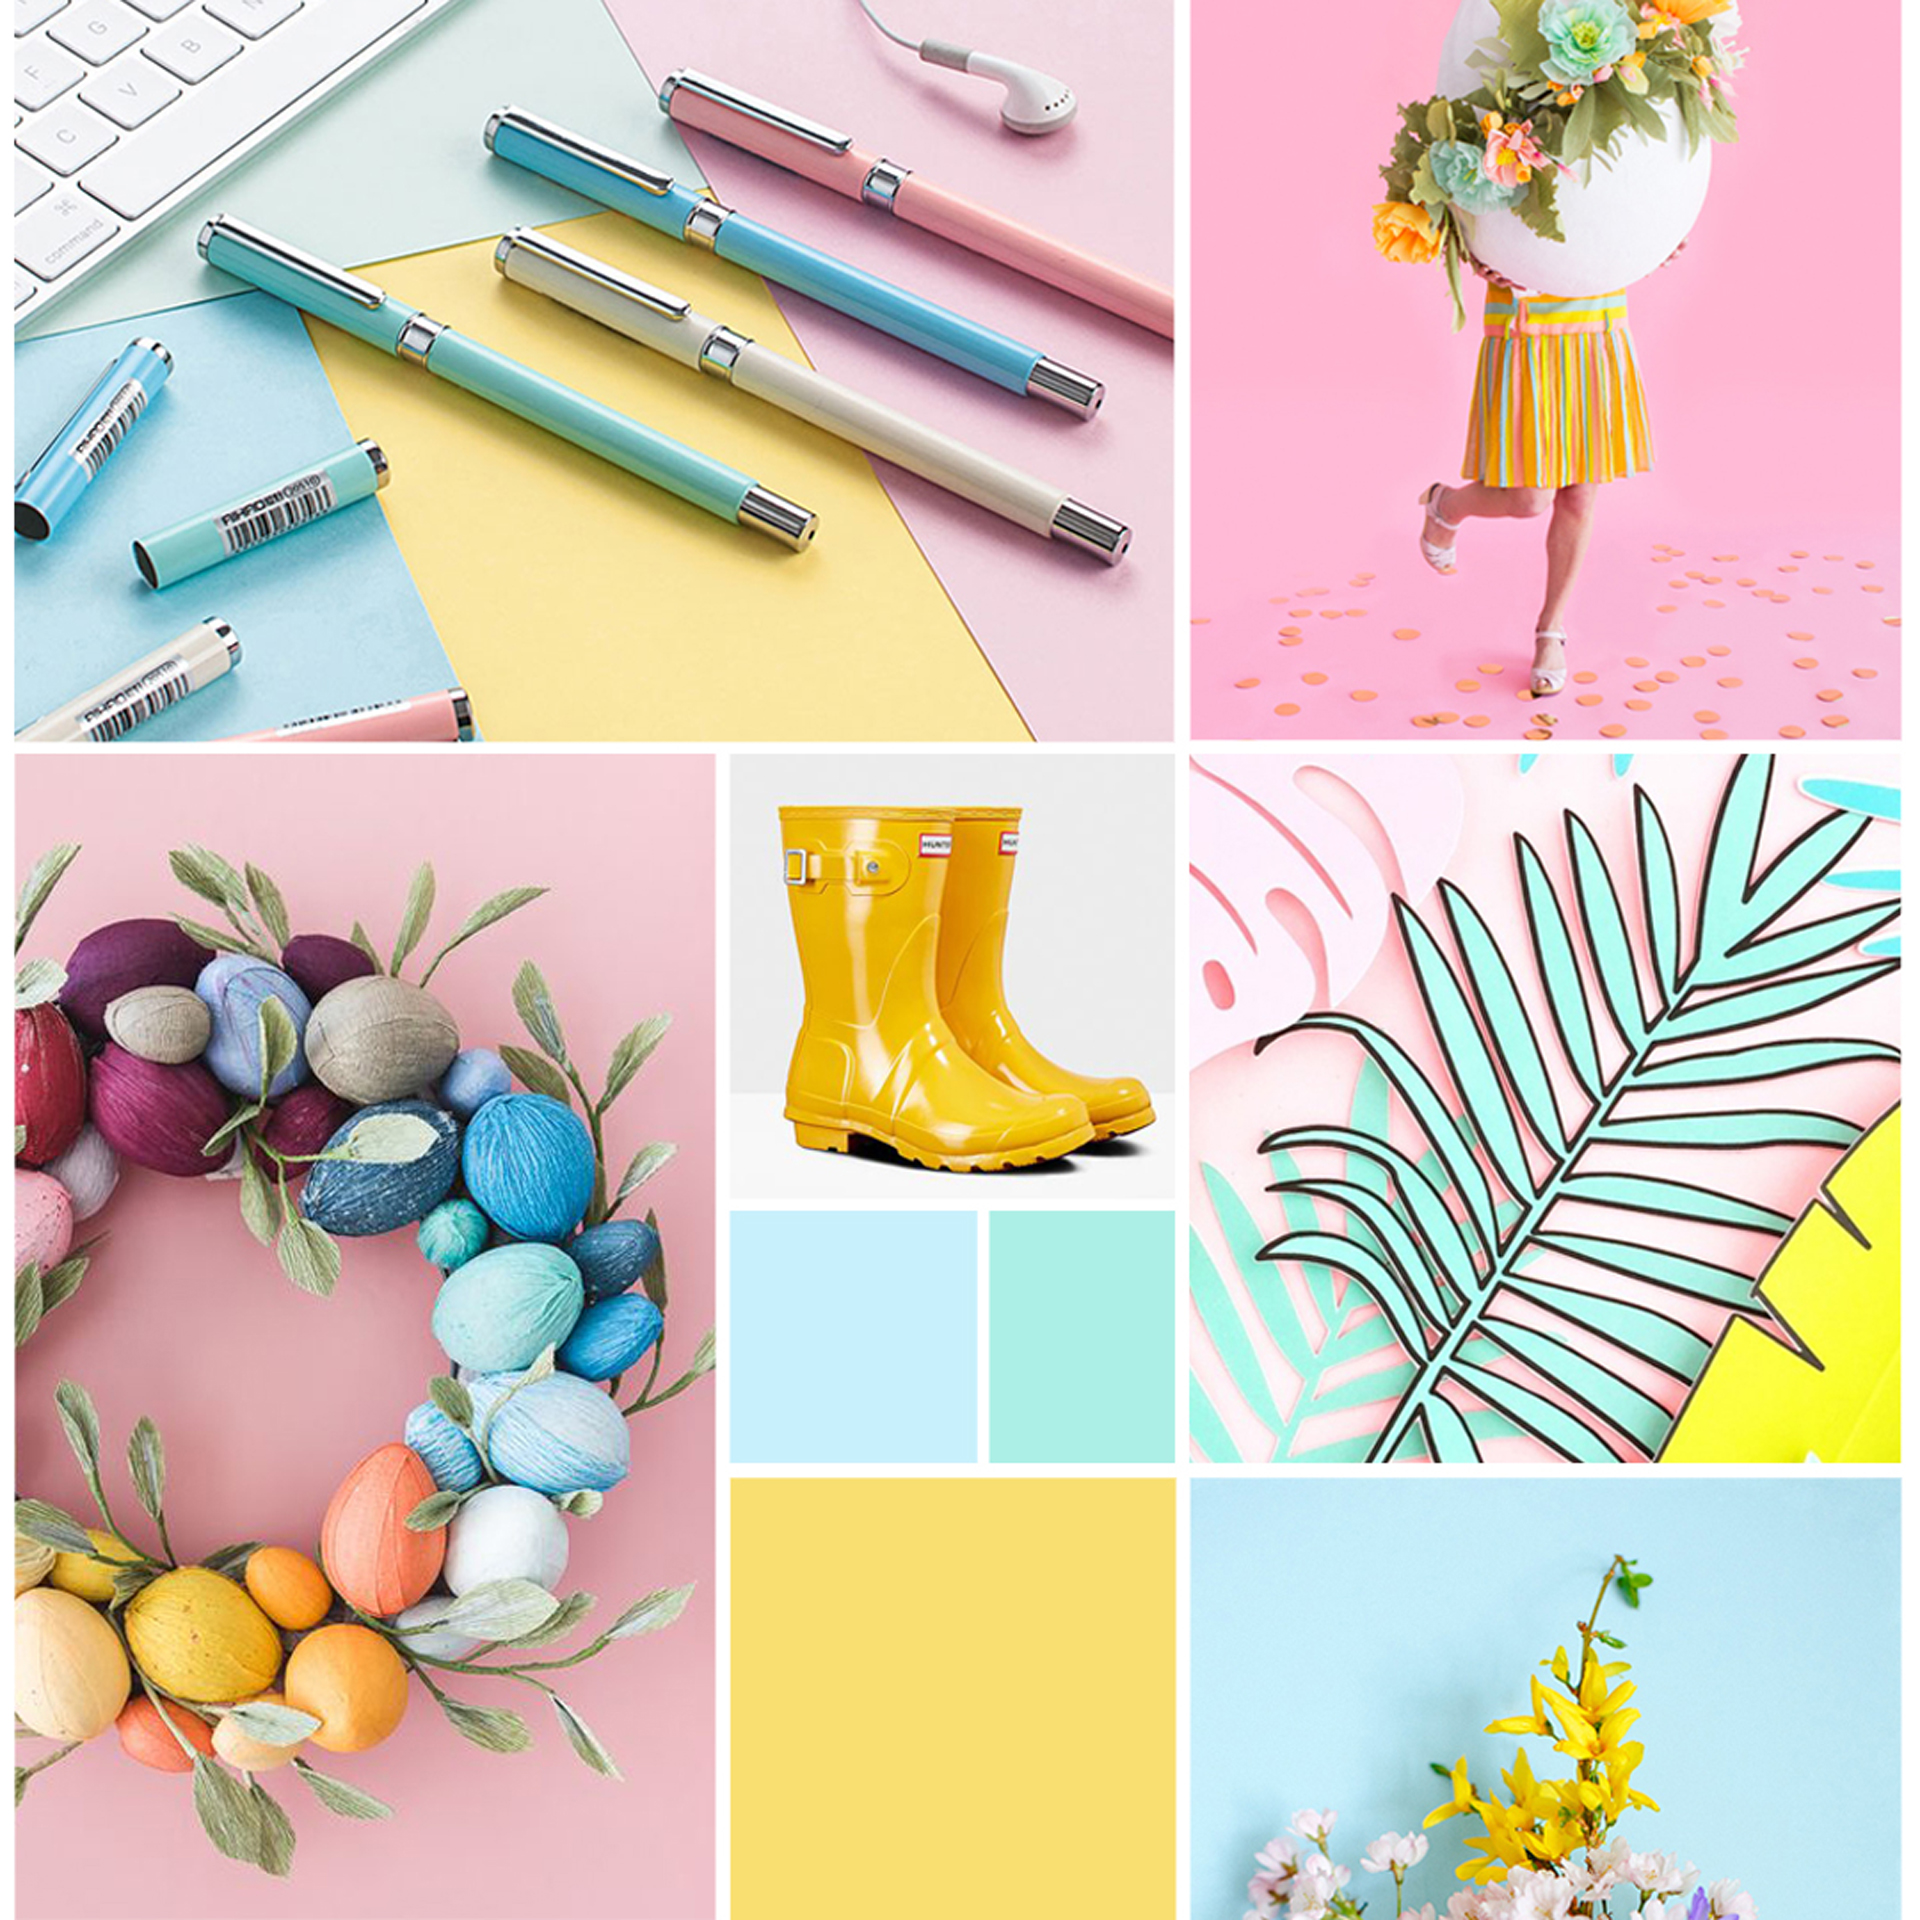 11 Prop Ideas for Spring Photography and Styling